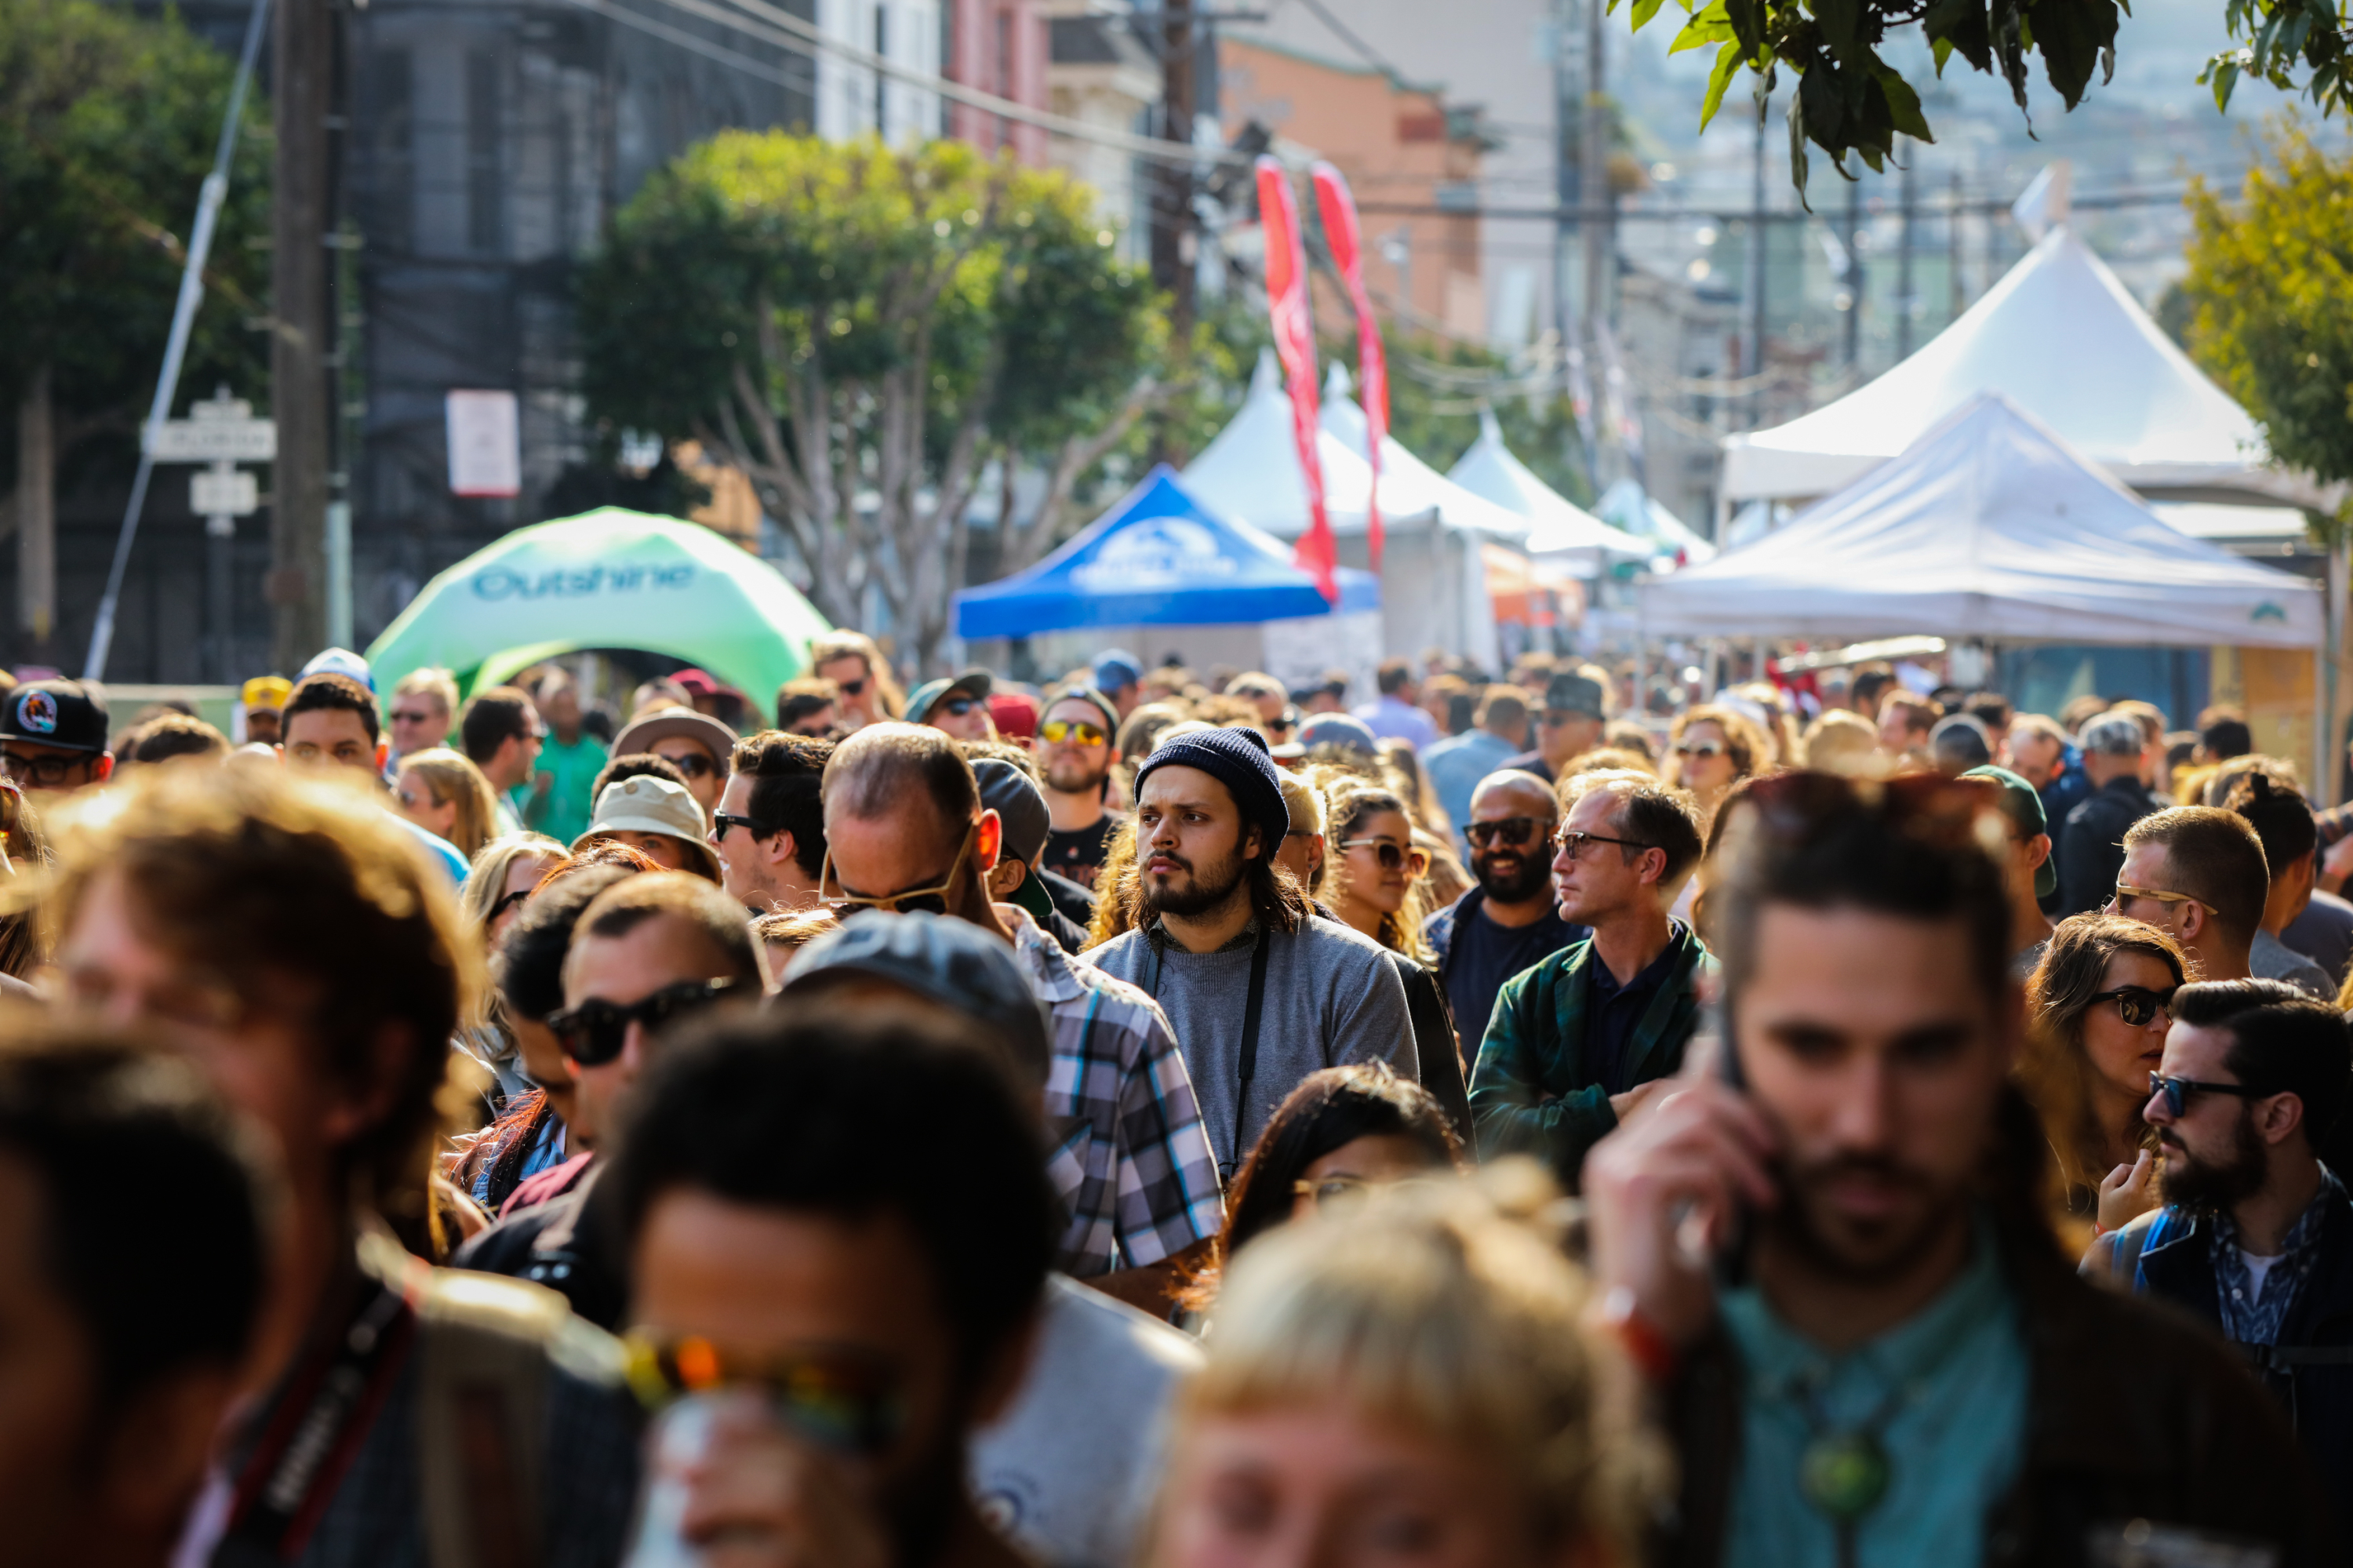 Nihonmachi Street Fair 2020.Bay Area Block Parties And Street Festivals To Check Out